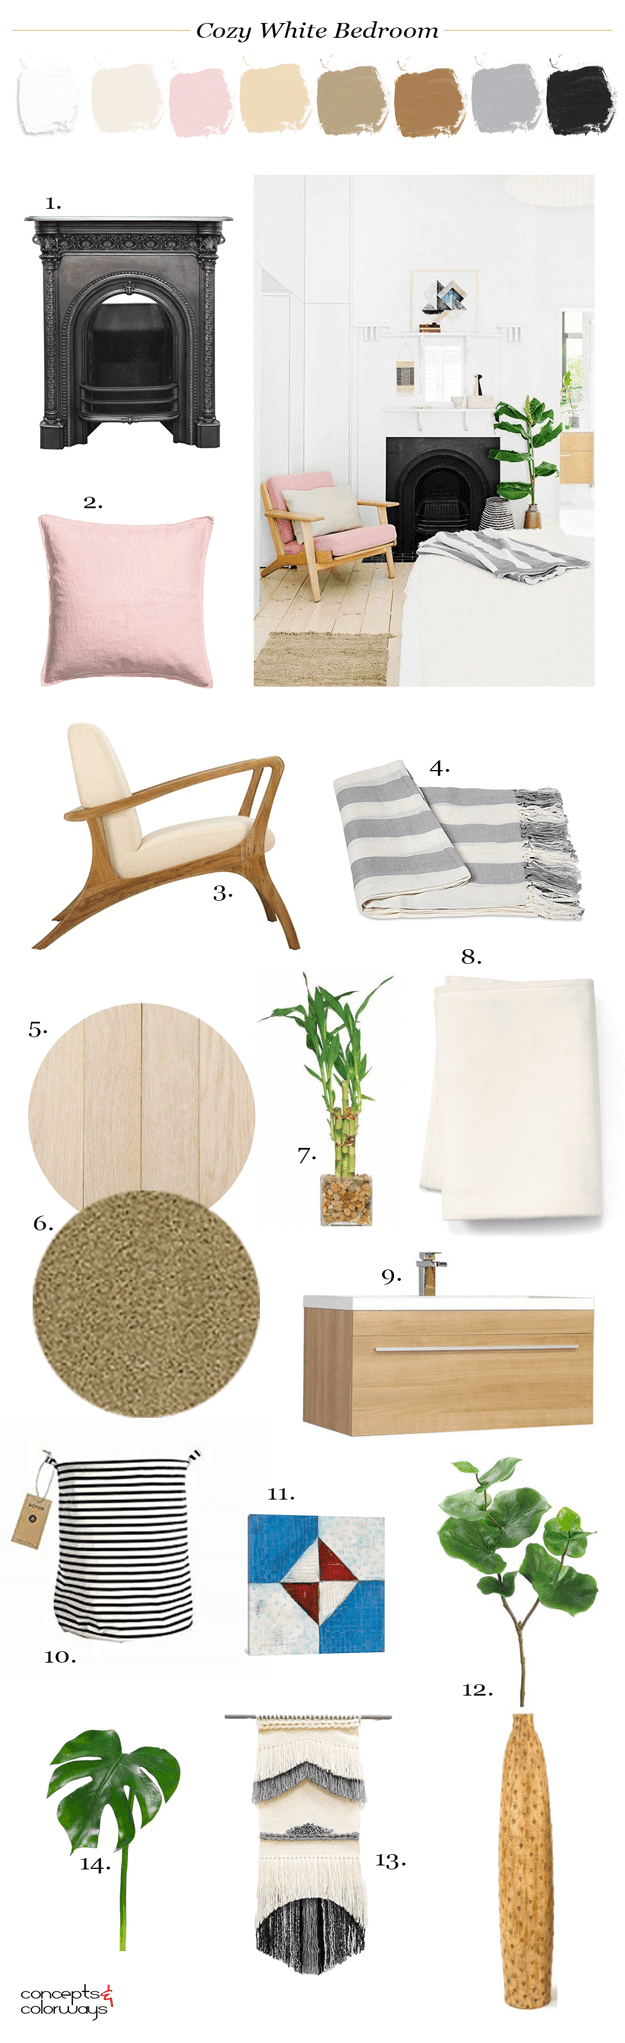 white bedroom interior design mood board